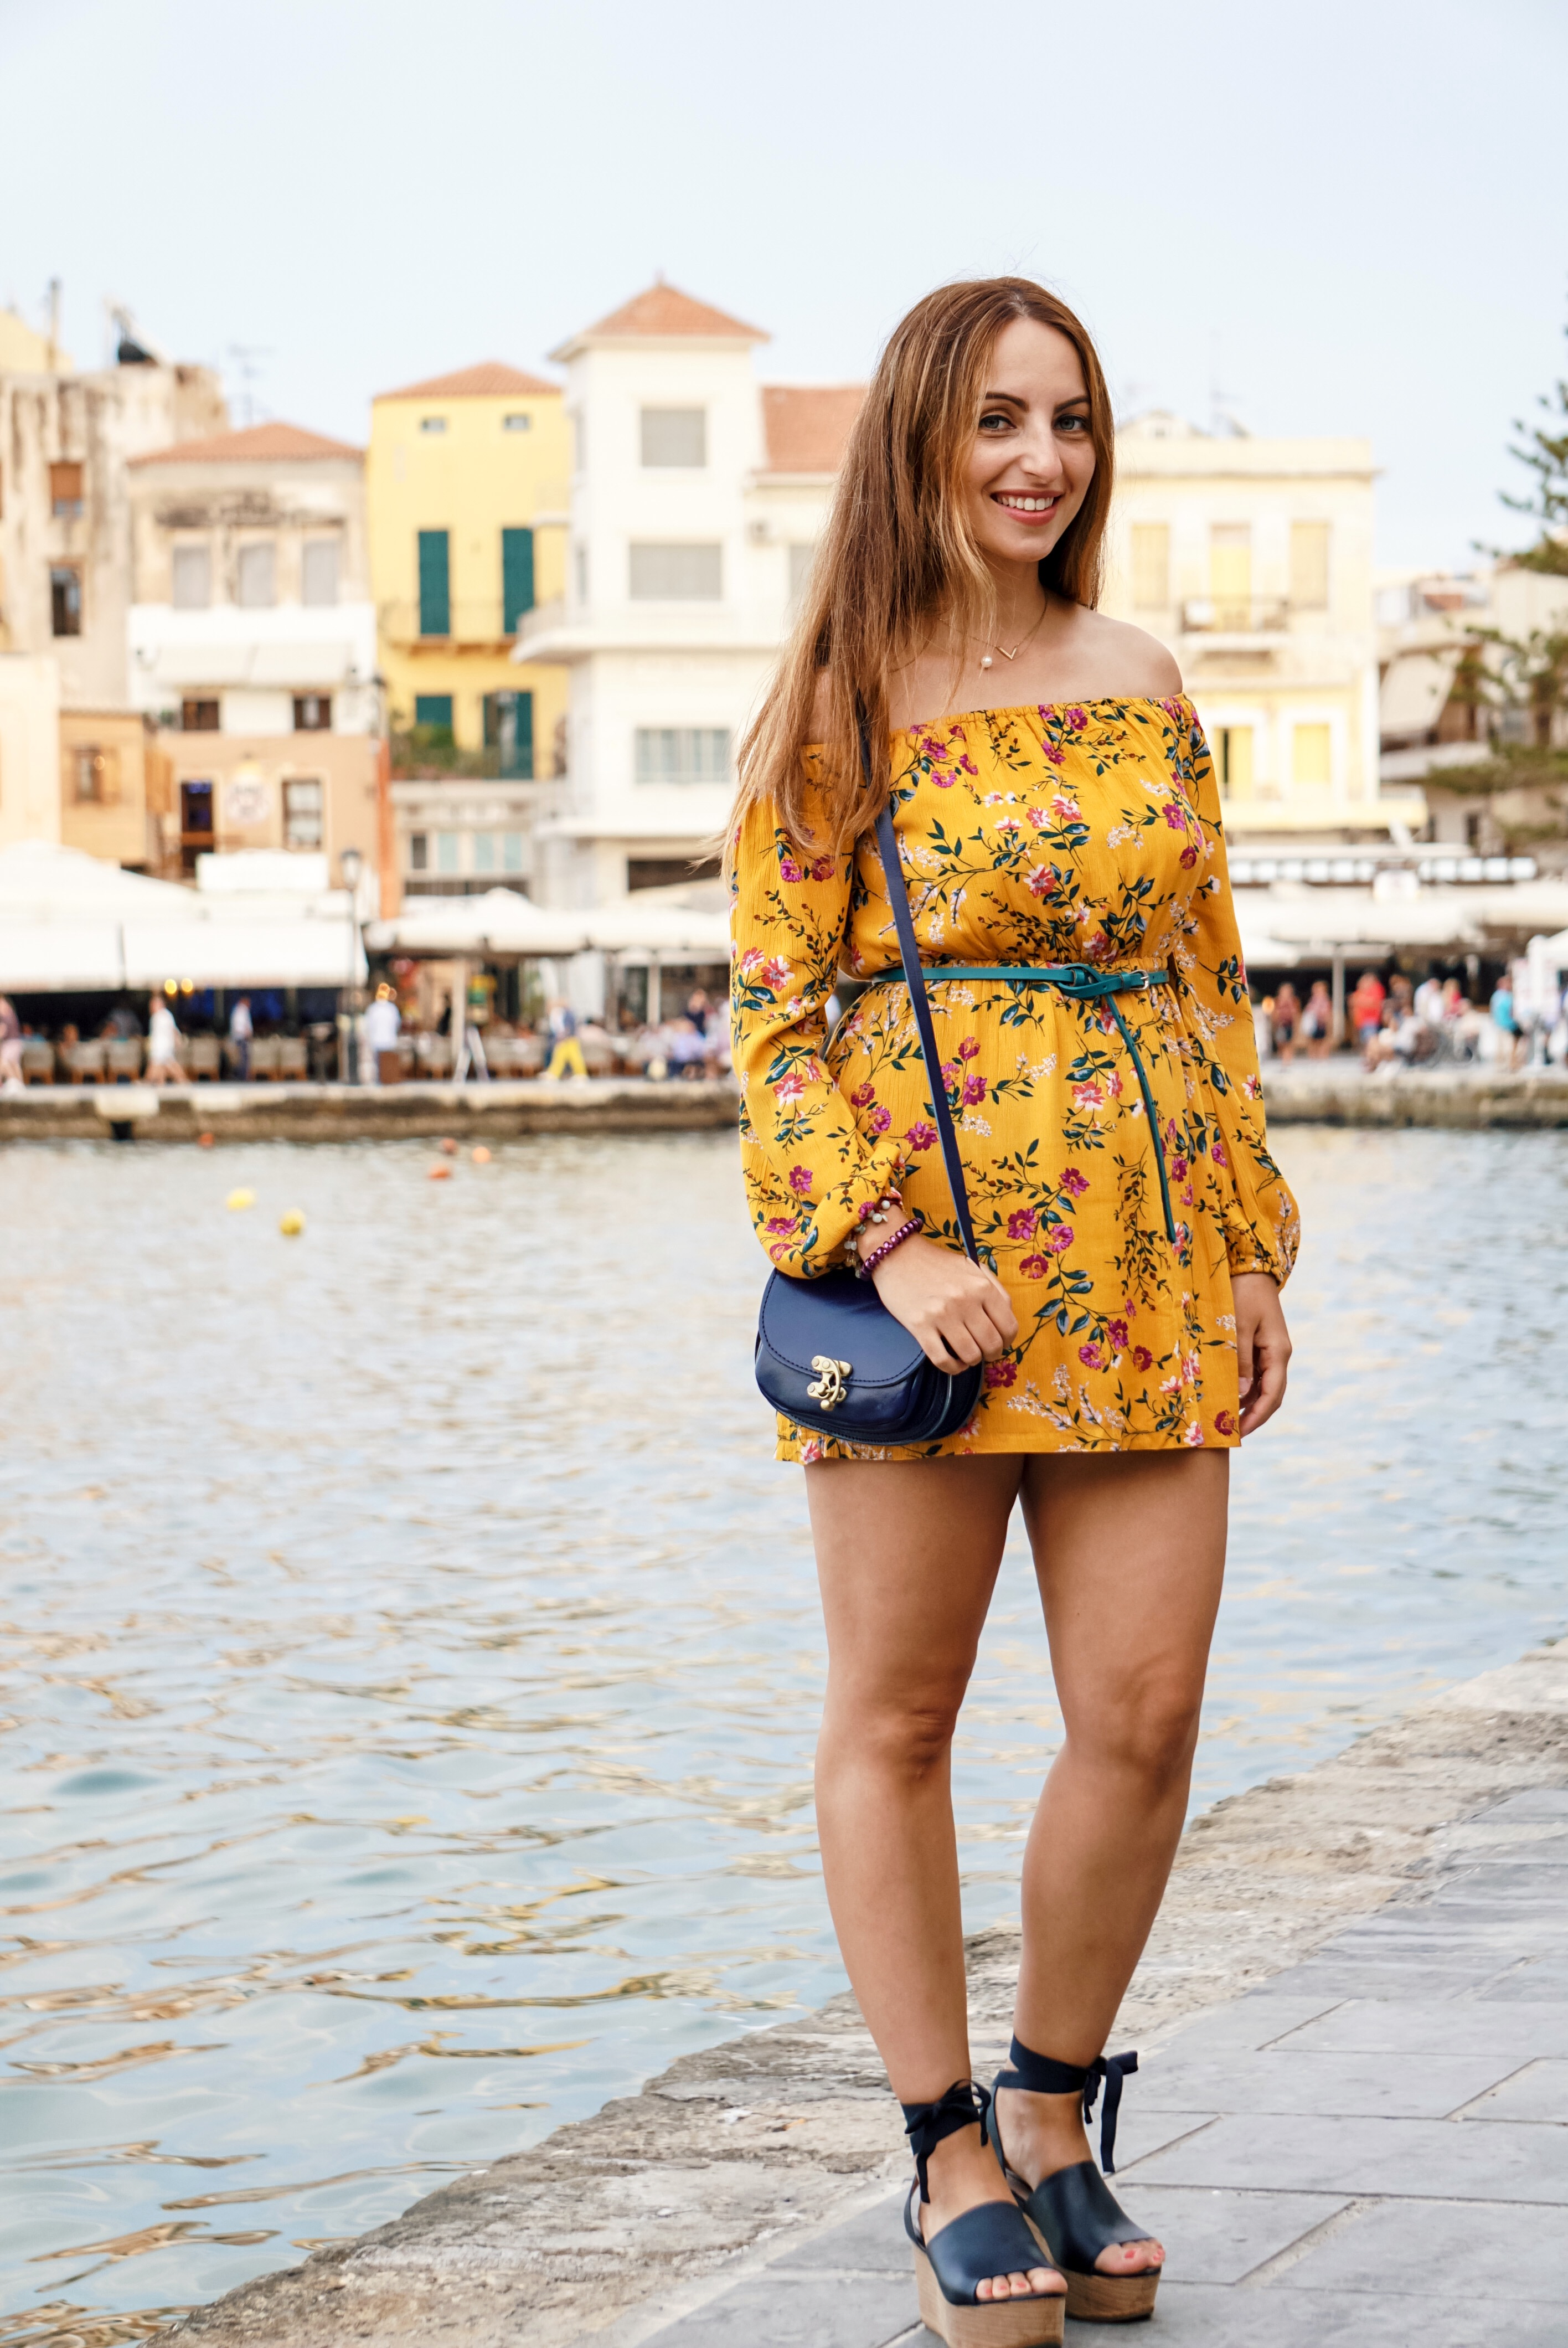 Chania-Crete-Fashionblogger-Outfit-Post-9